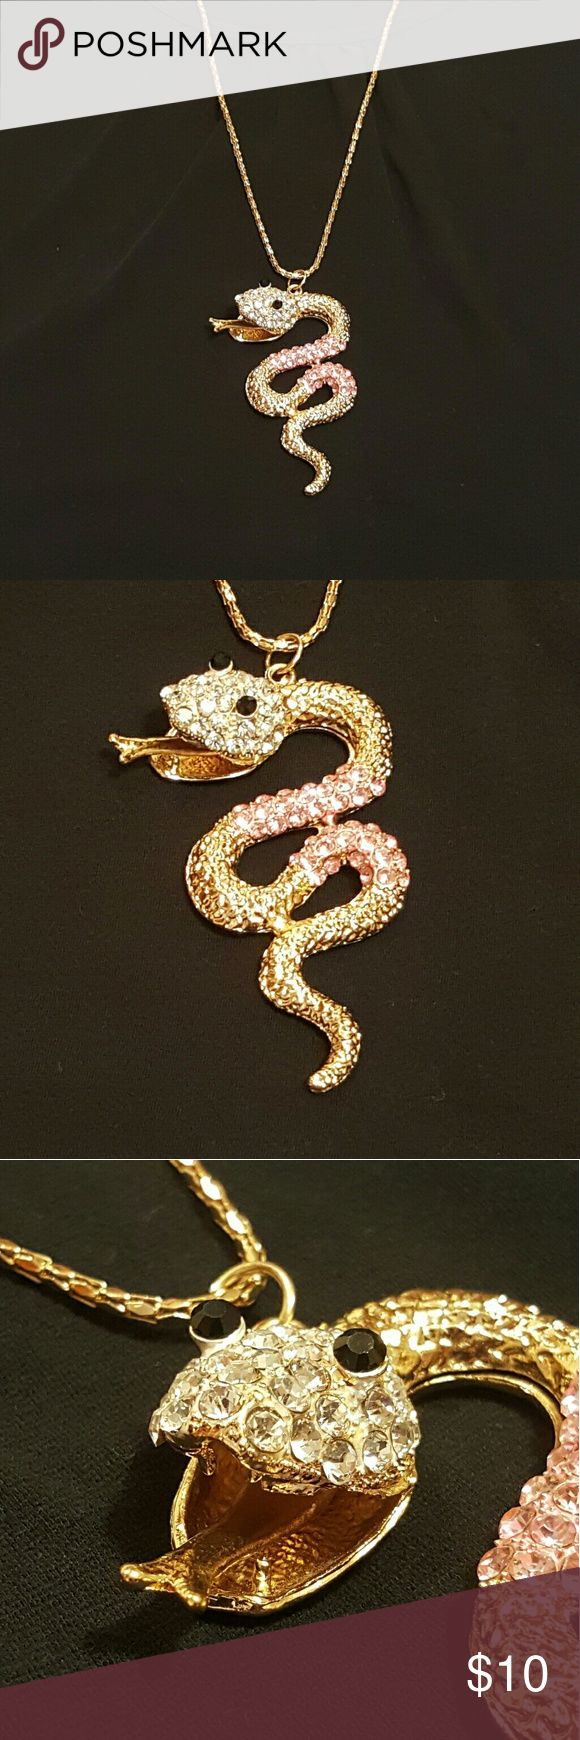 NWOT snake fashion necklace *STATEMENT PIECE* Eye catching sparkling snake necklace, NWOT Chain is 29 inches long Snake is approx 4 inches in height x 1.5 inches wide Jewelry Necklaces